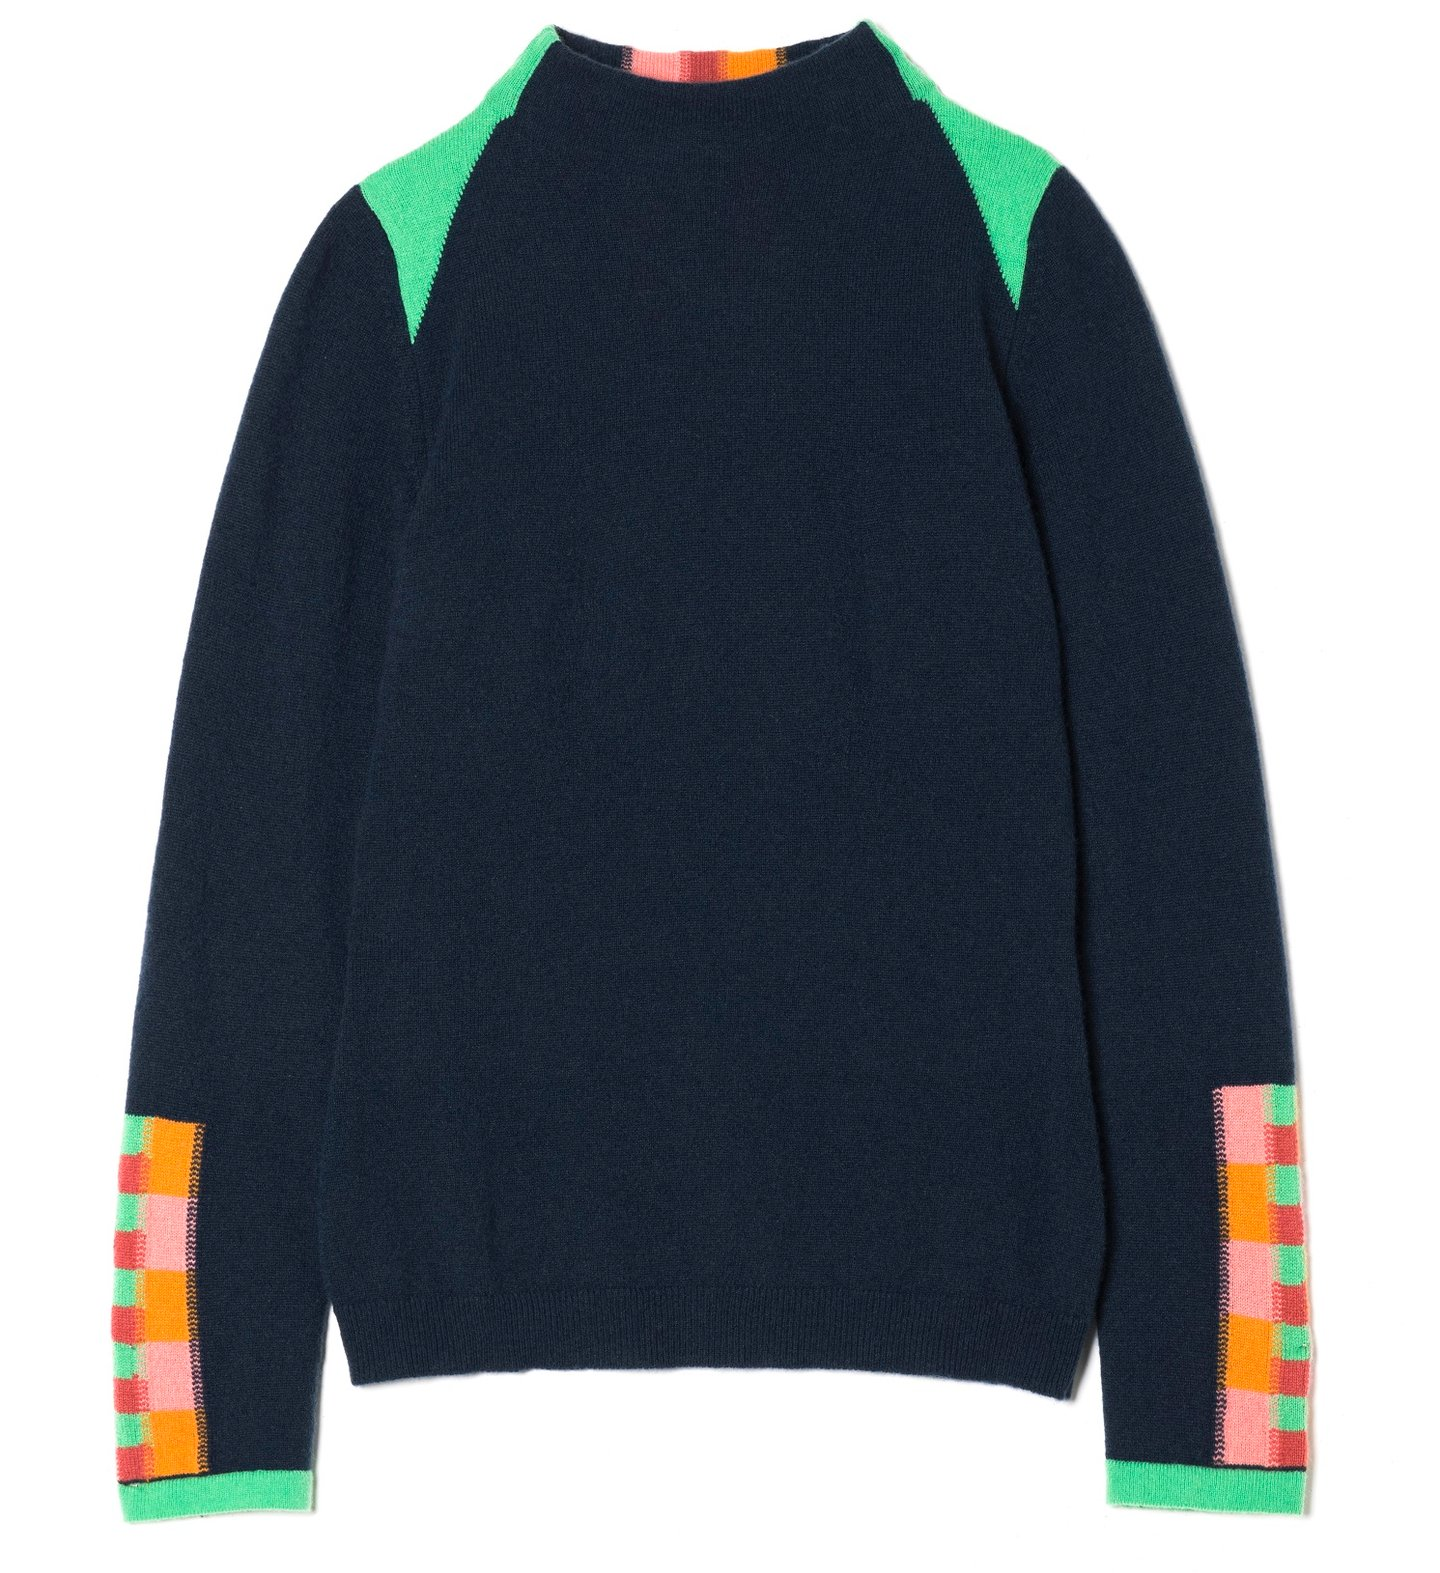 UCB Sixties_cashmere_150 euros